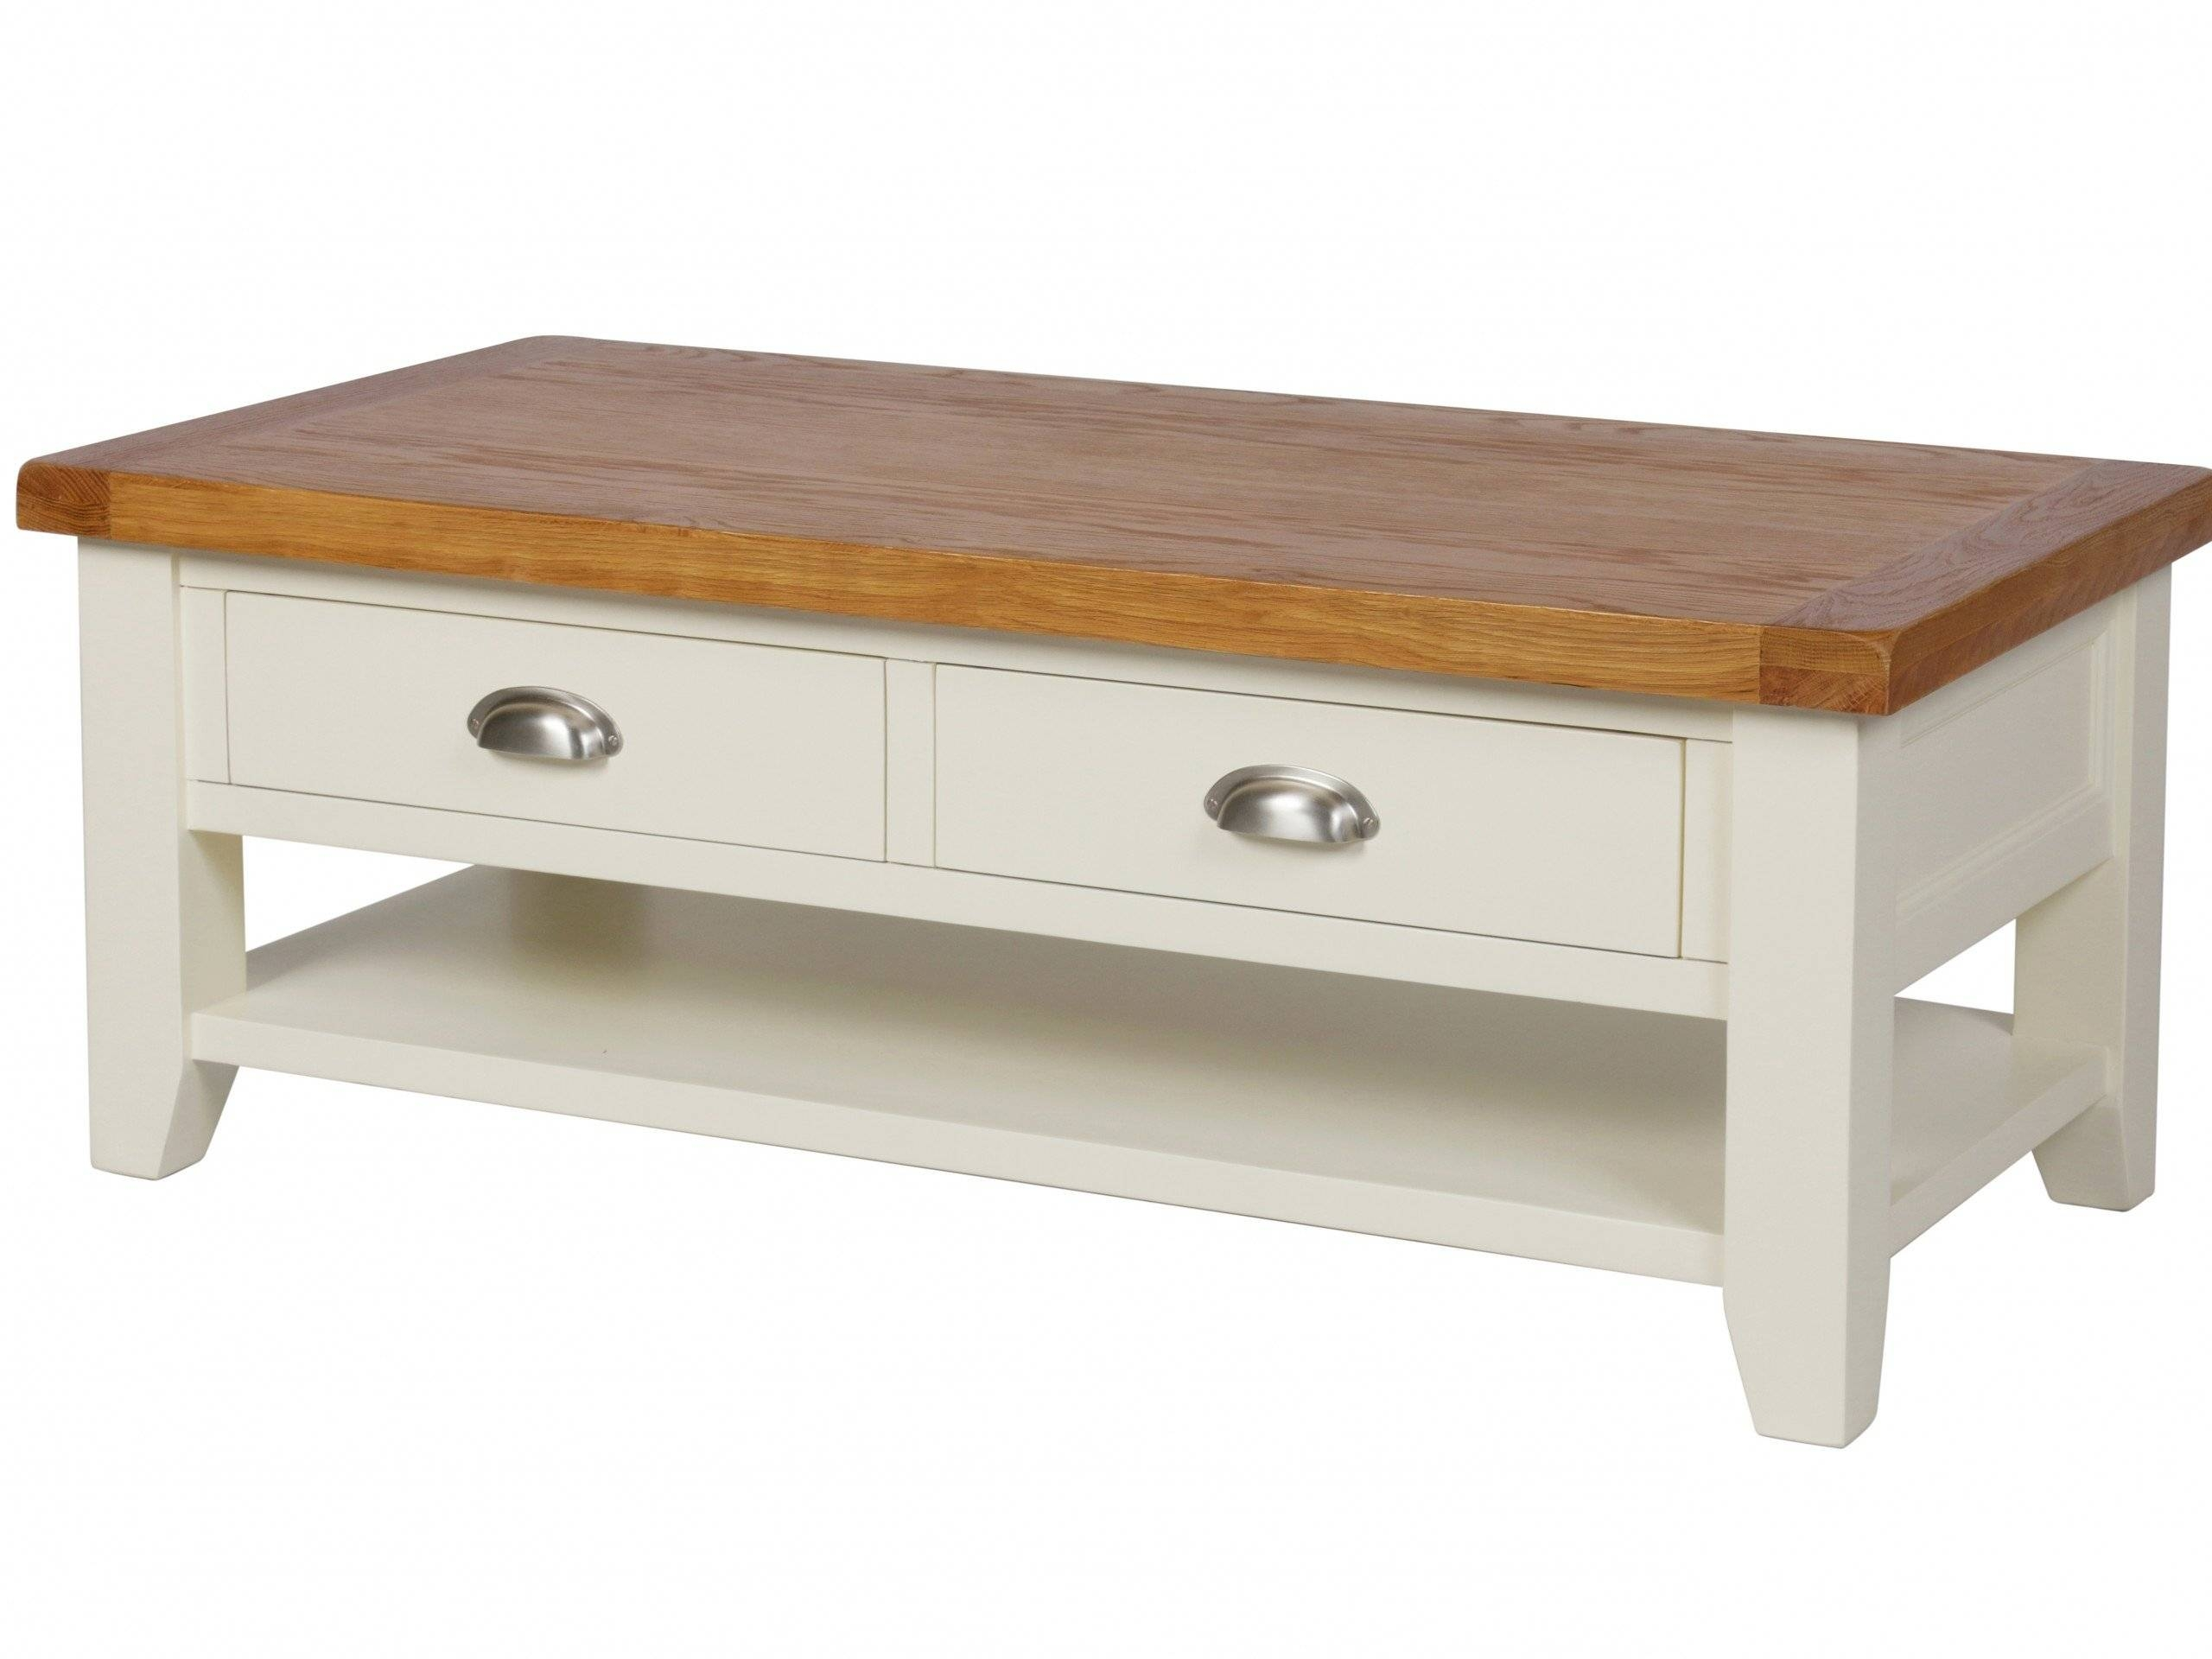 Country Oak Cream Painted Large 4 Drawer Coffee Table With Shelf Regarding Oak Wood Coffee Tables (View 11 of 15)